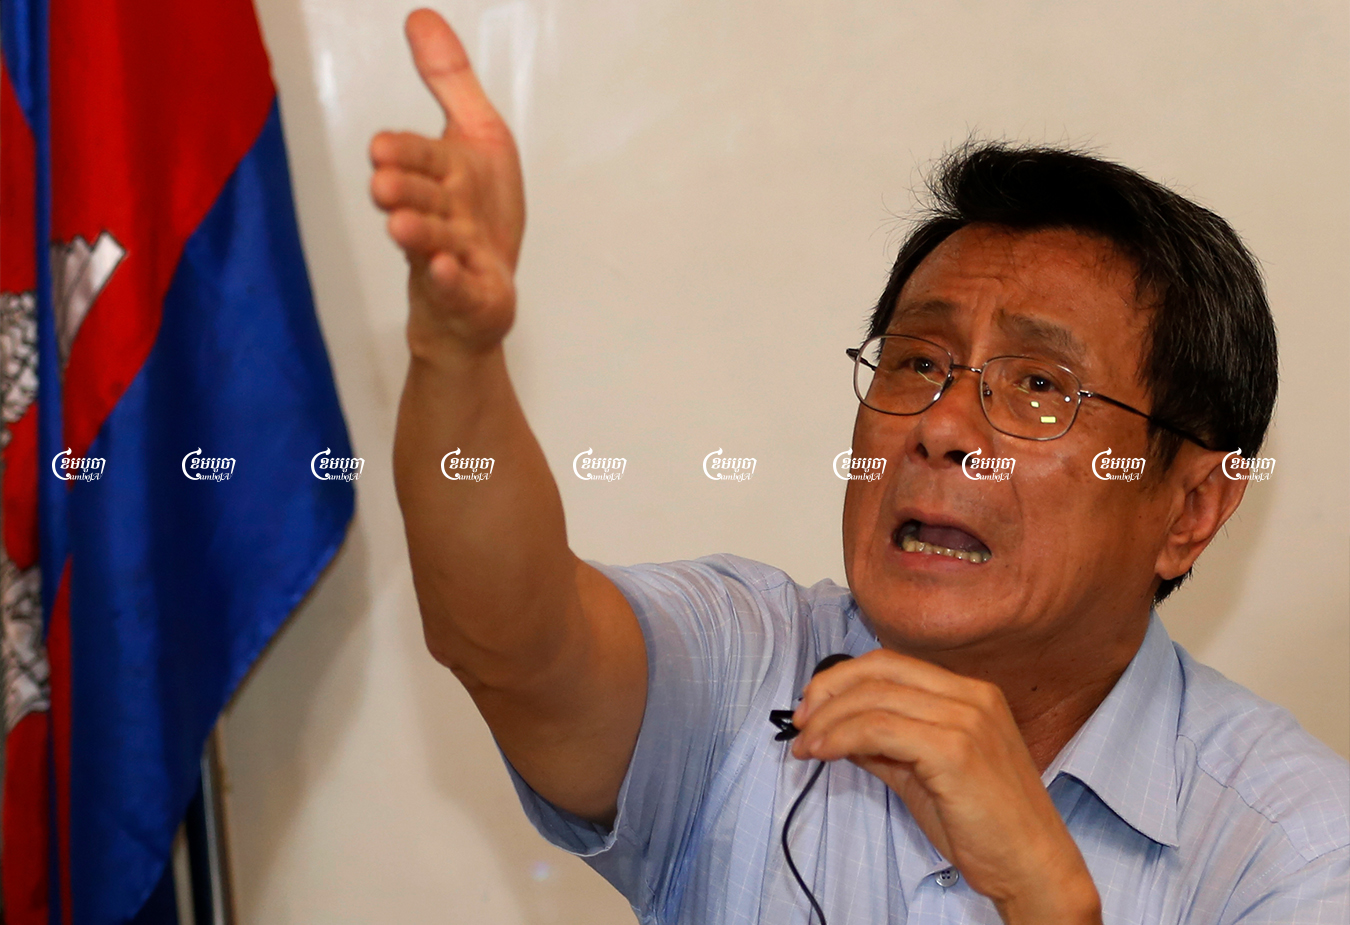 Former president of Adhoc, Thun Saray, speaks during a press conference in Phnom Penh, Picture taken on April 26, 2016. CamboJA/ Panha Chhorpoan